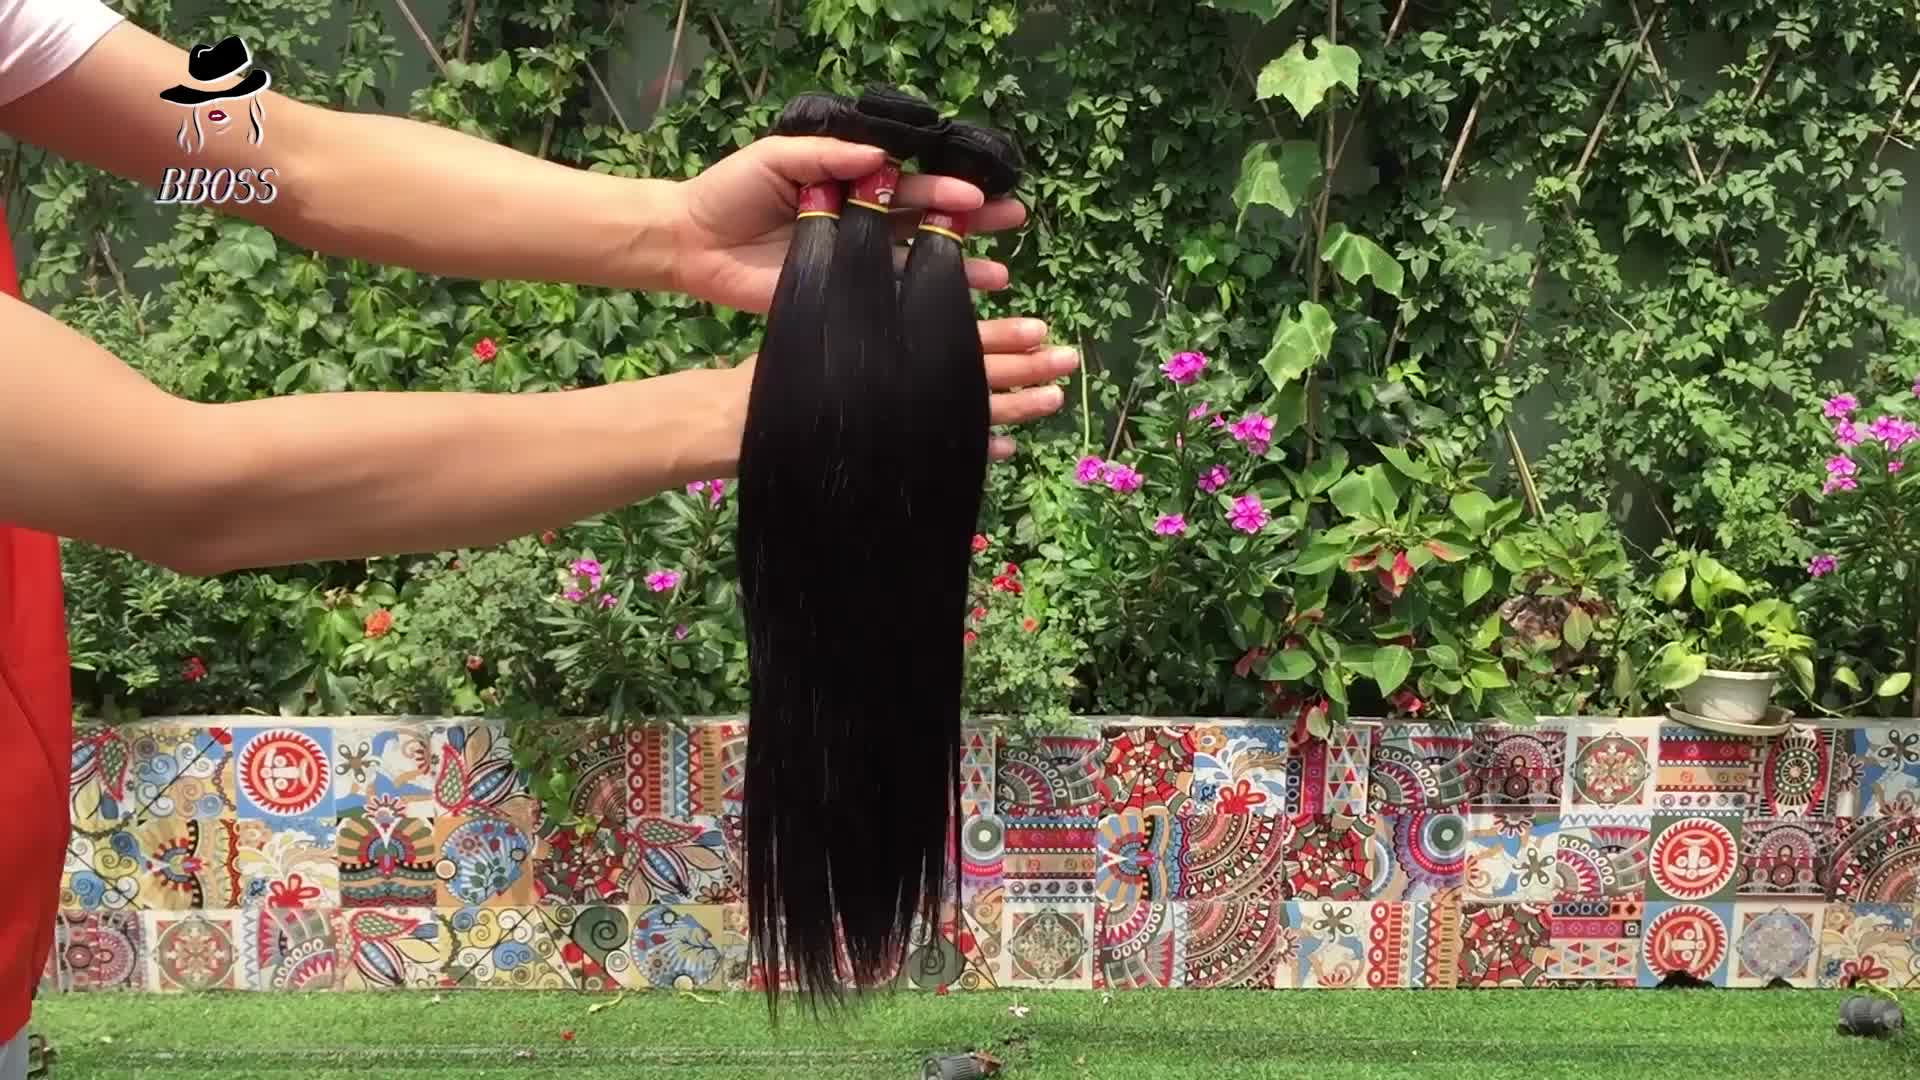 wholesale raw virgin indian hair,remy indian hair raw unprocessed virgin,remy raw indian cuticle aligned hair vendors from india